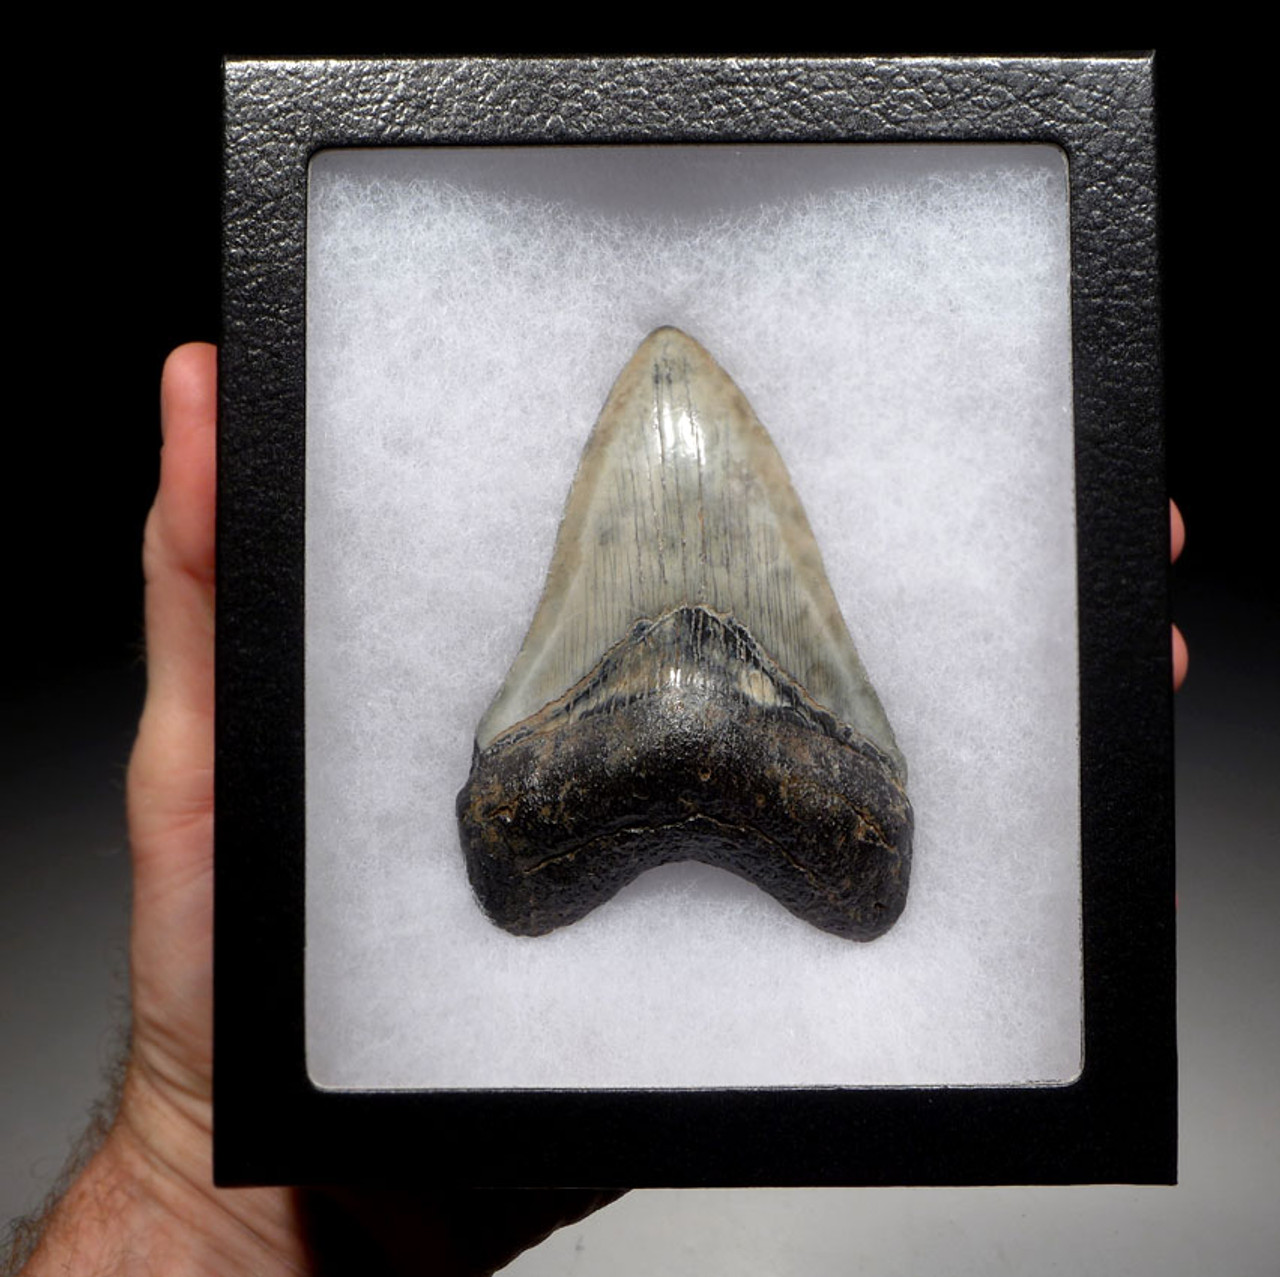 COLLECTOR GRADE 3.85 INCH MEGALODON SHARK TOOTH WITH PEARLY WHITE ENAMEL AND OPEN SPOTS *SH6-397